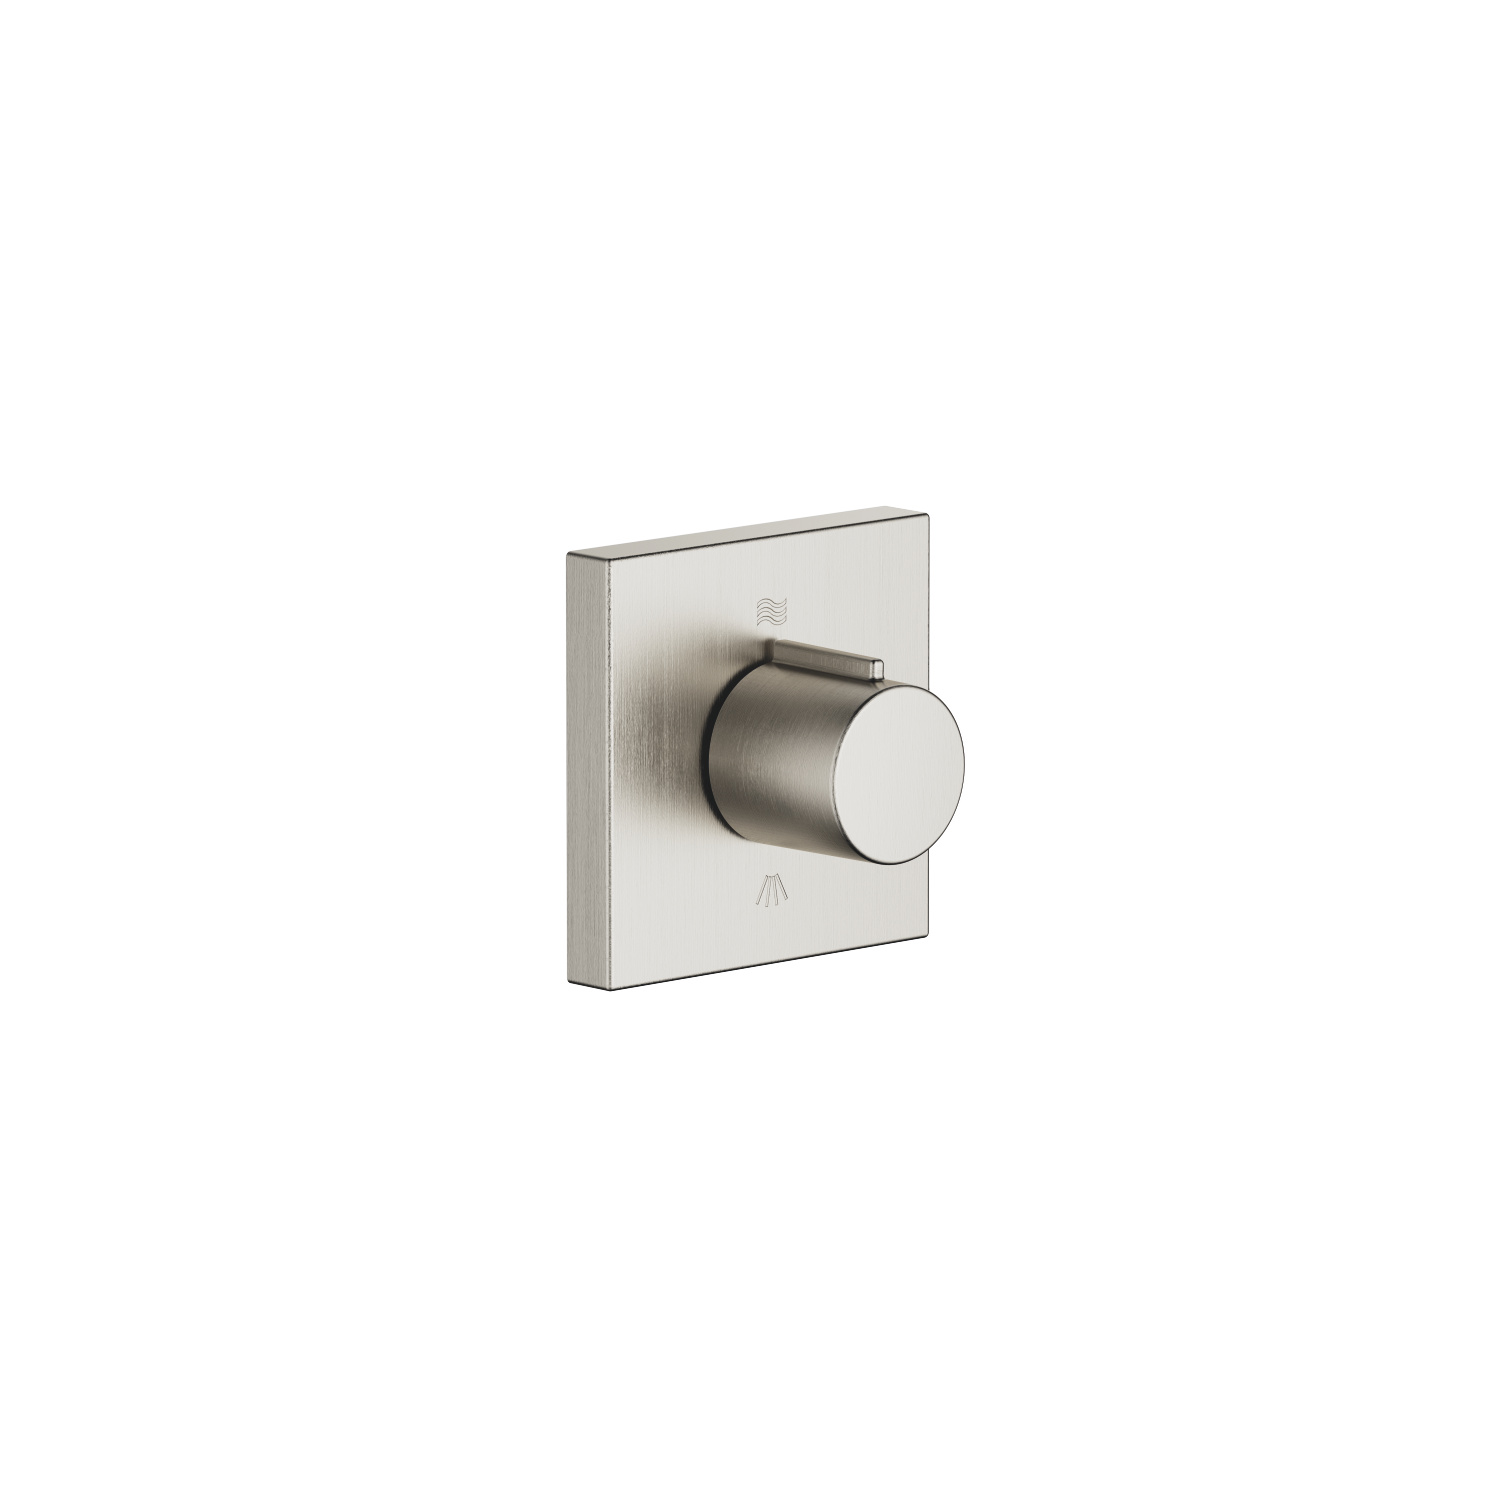 Concealed two-way diverter - platinum matt